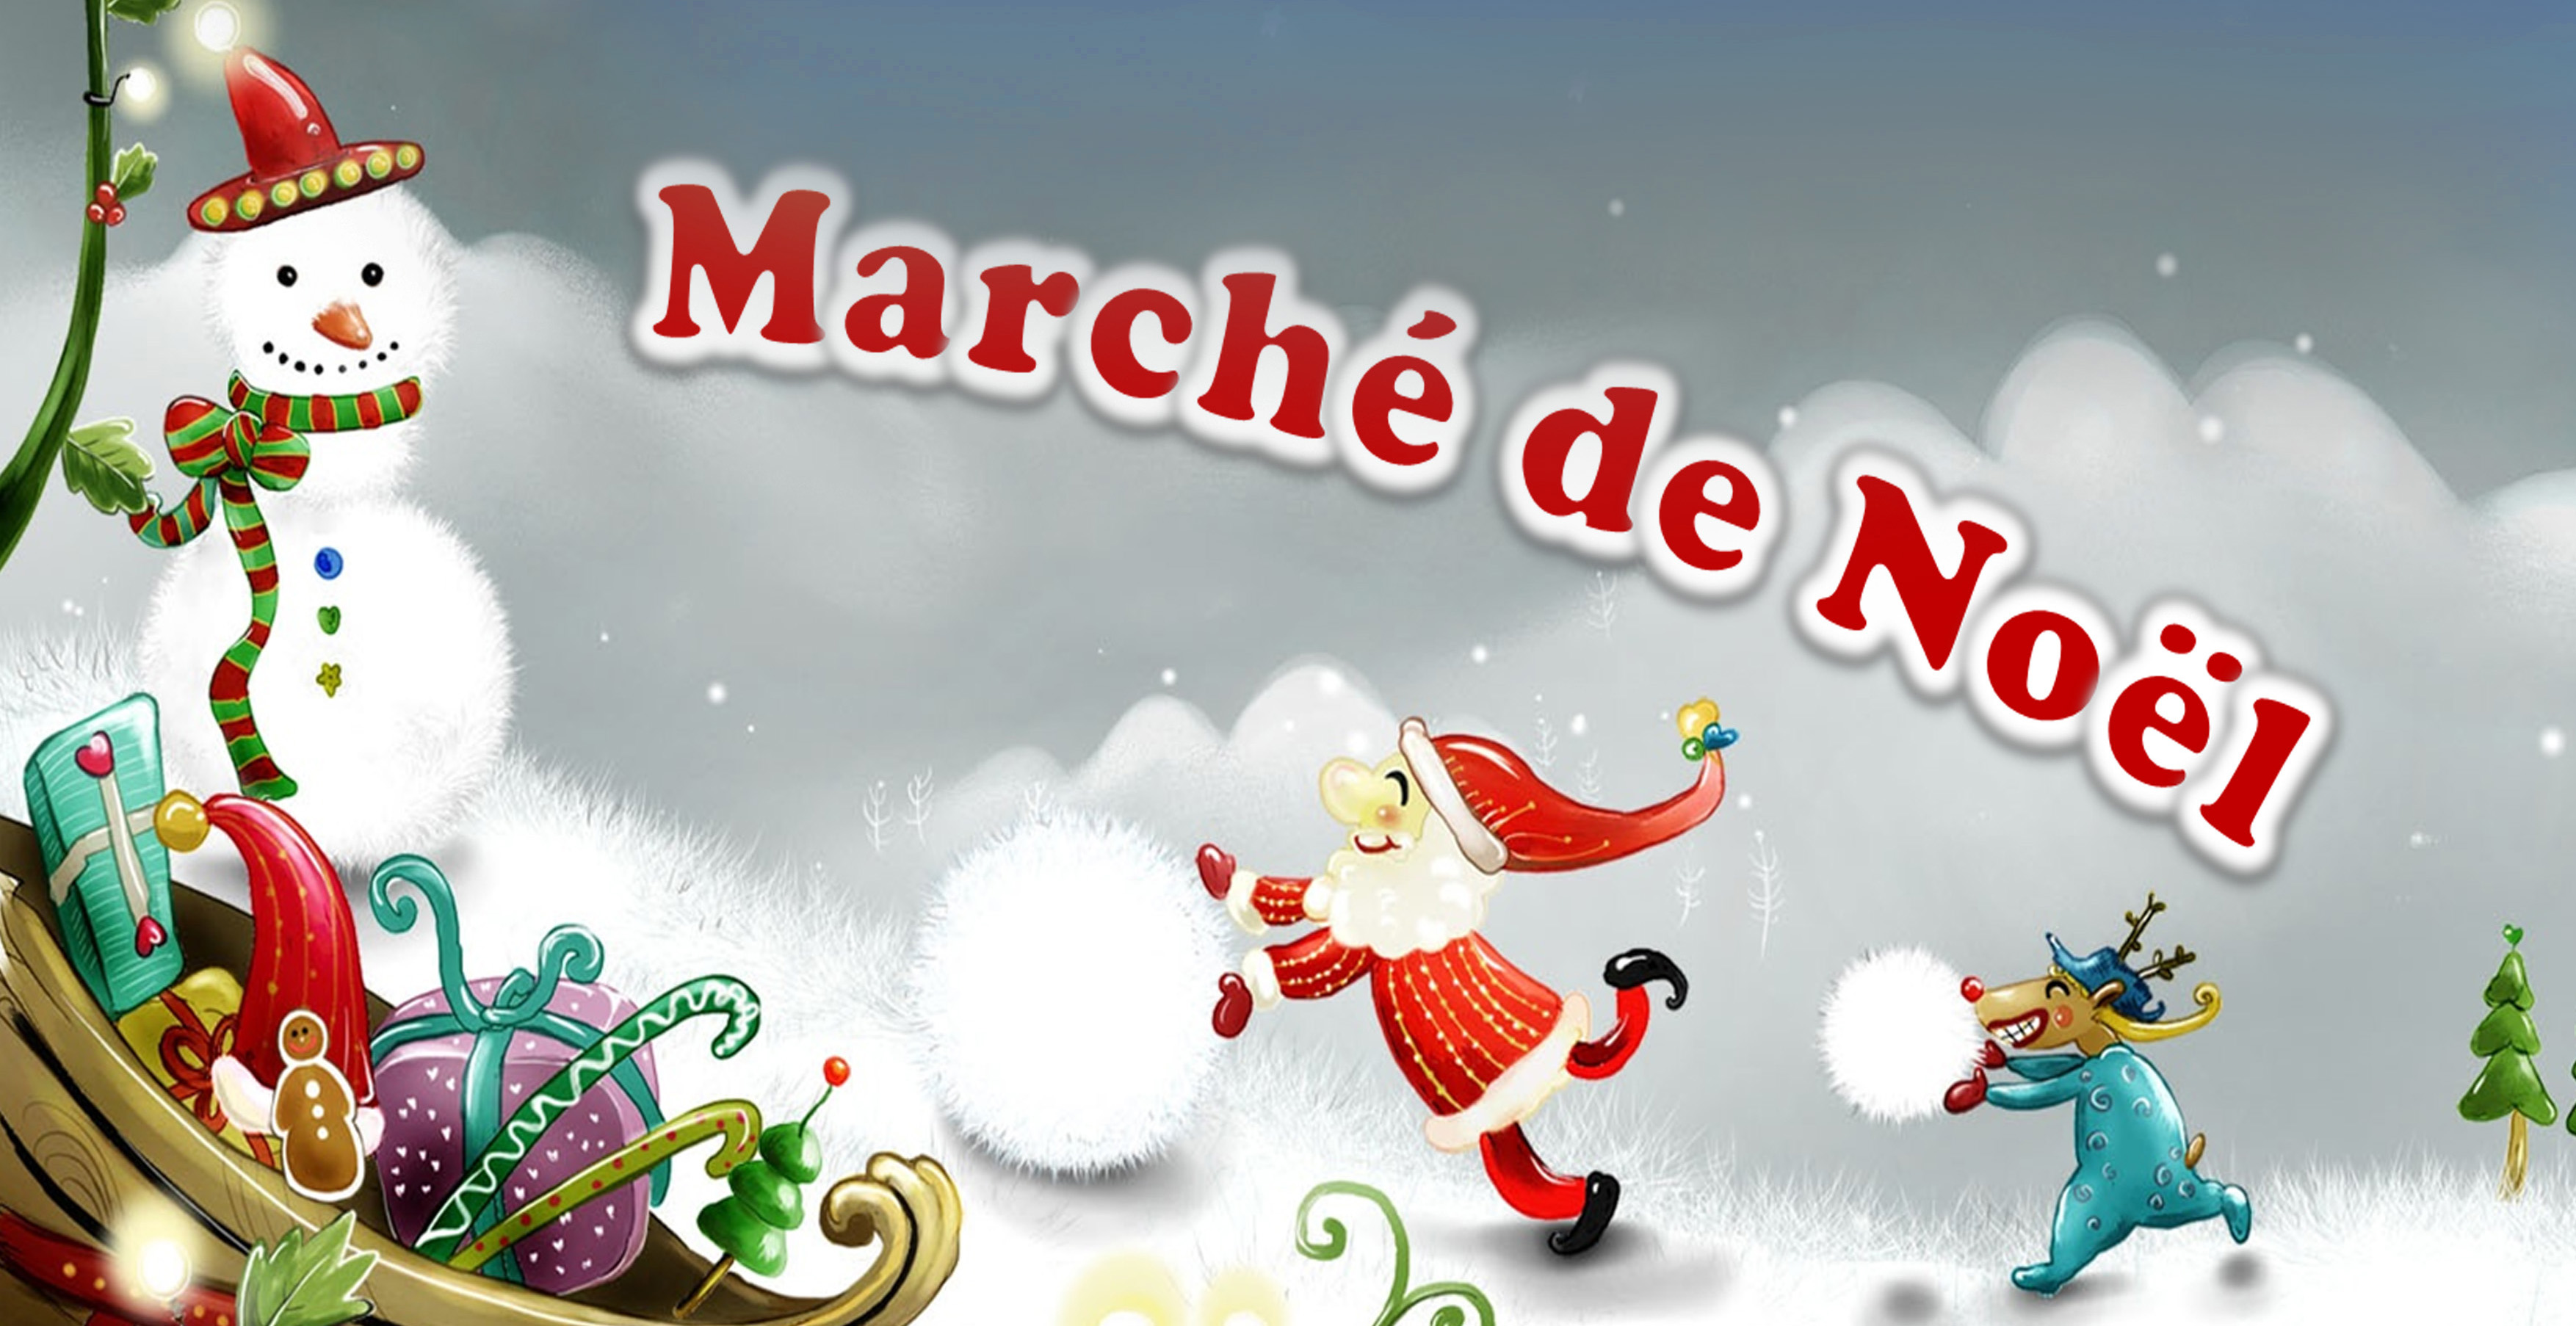 marche de noel mairie de saint clair de la tour. Black Bedroom Furniture Sets. Home Design Ideas